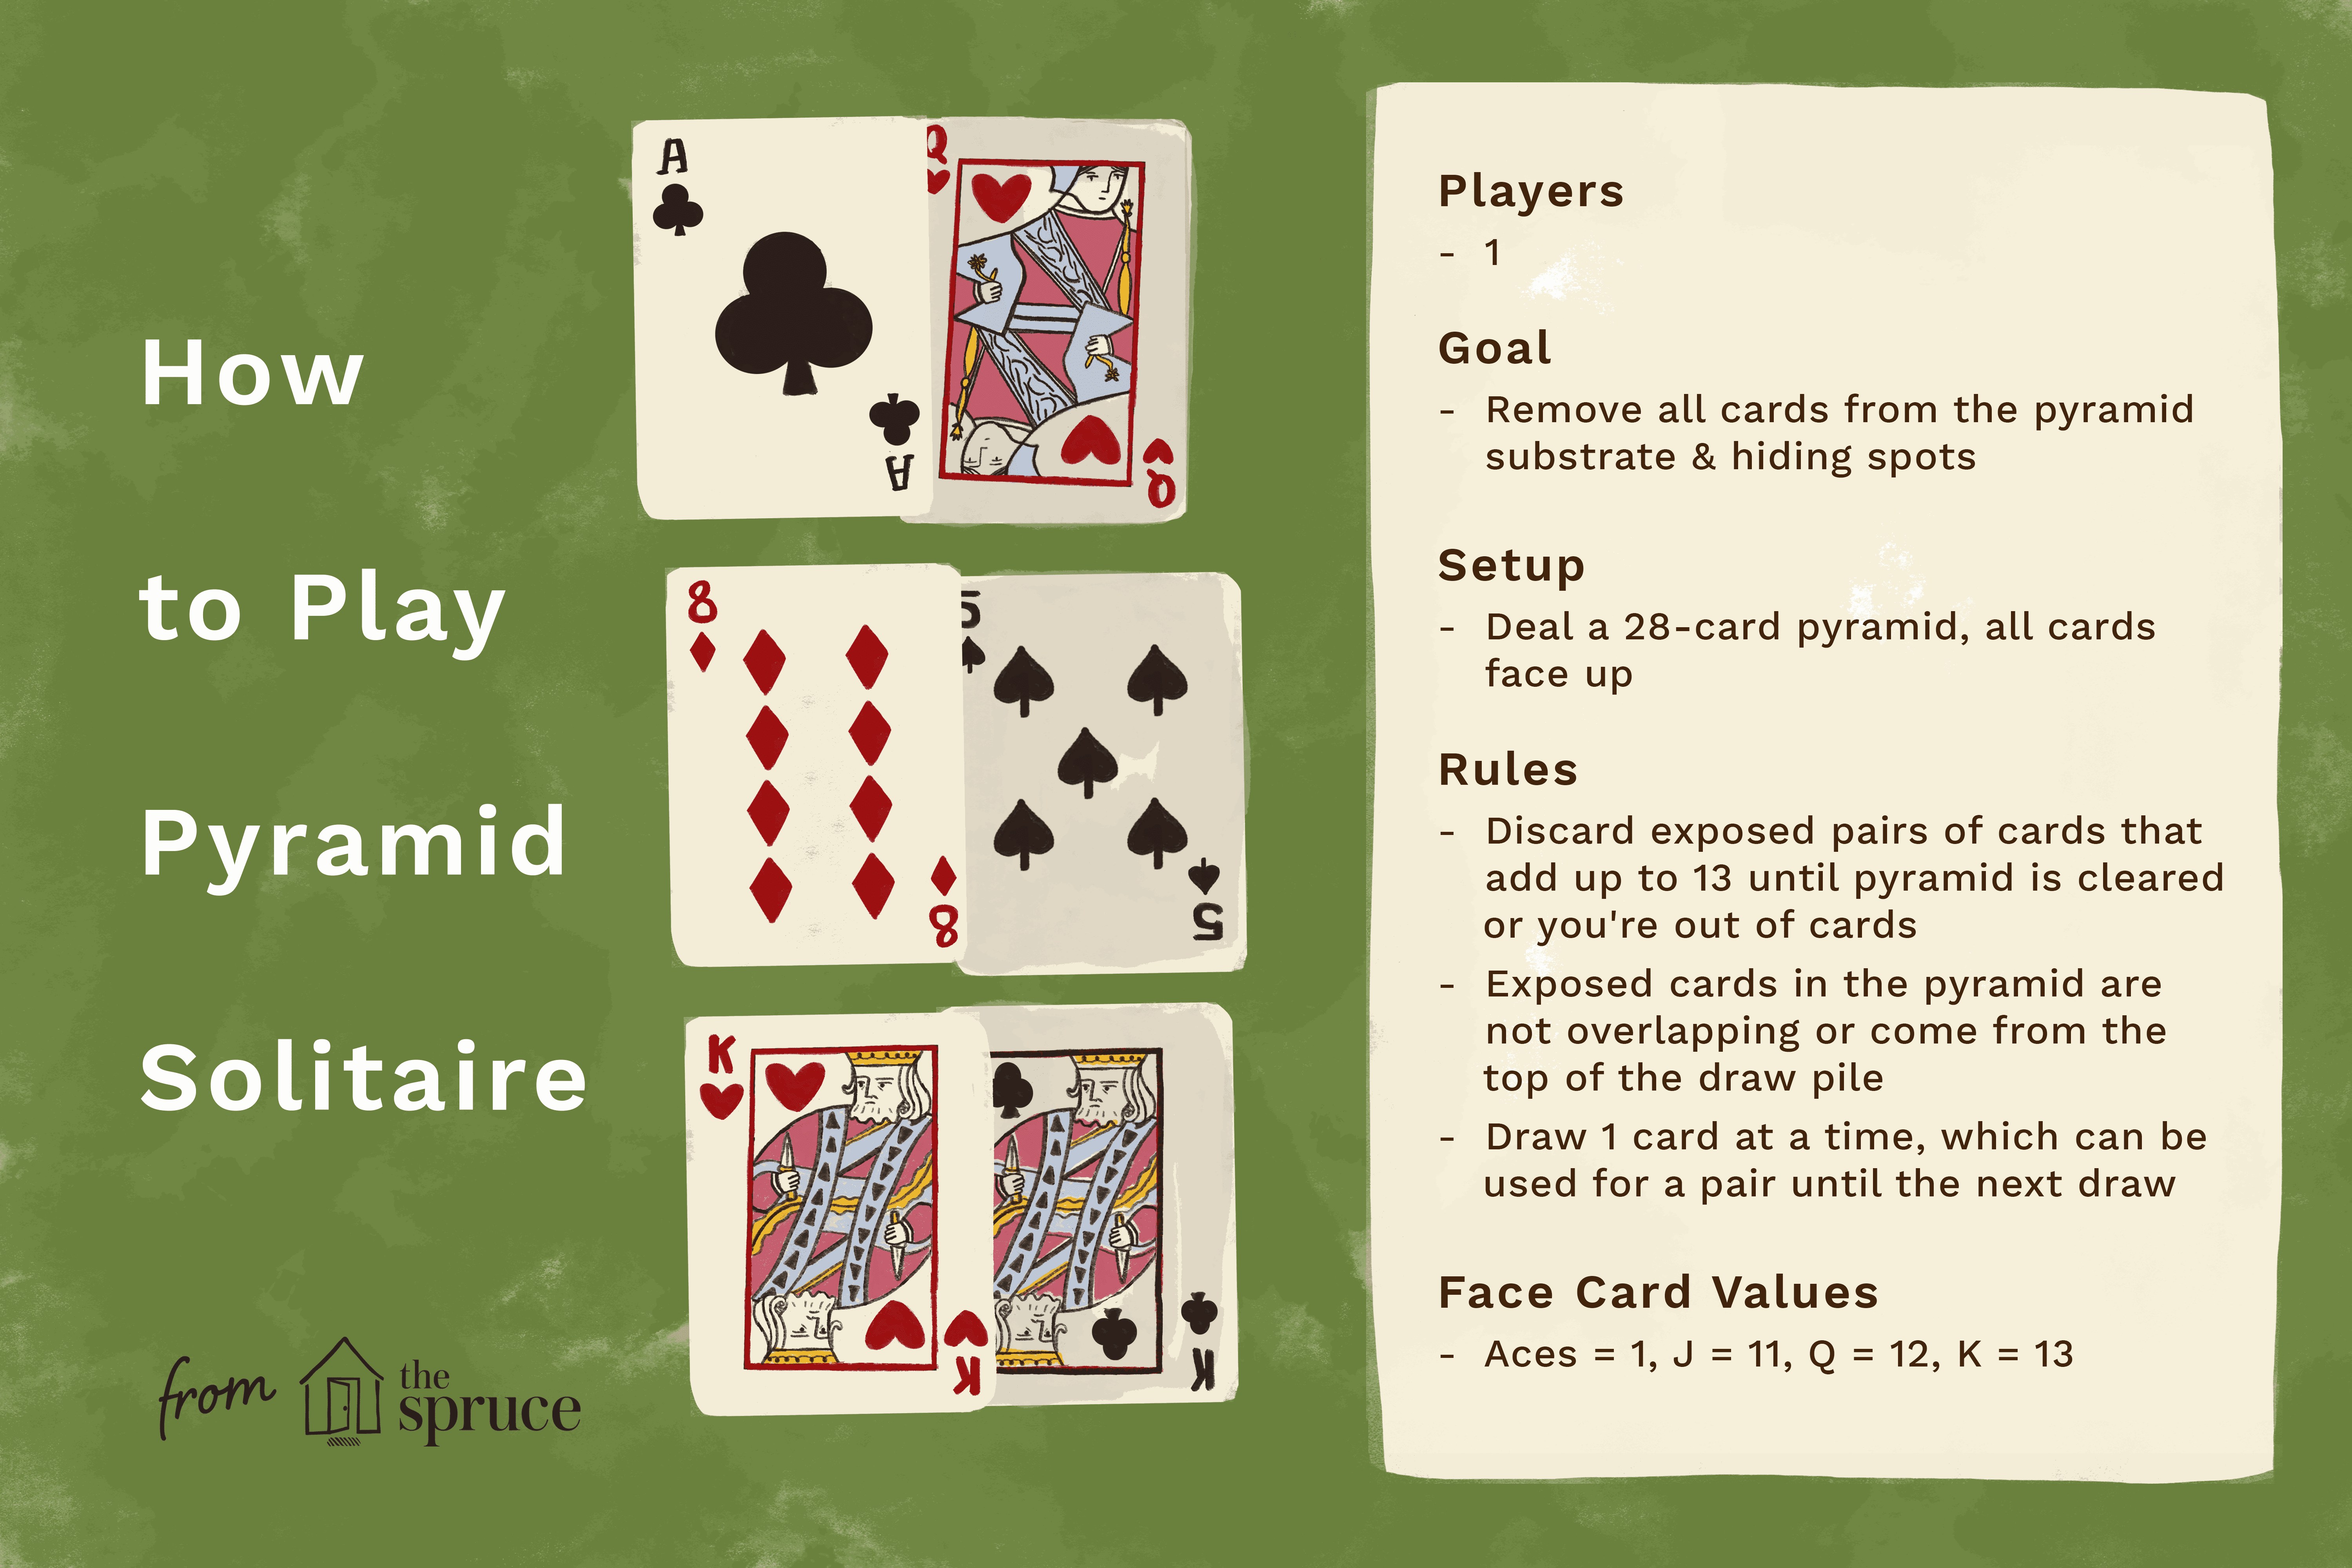 Solitaire Rules